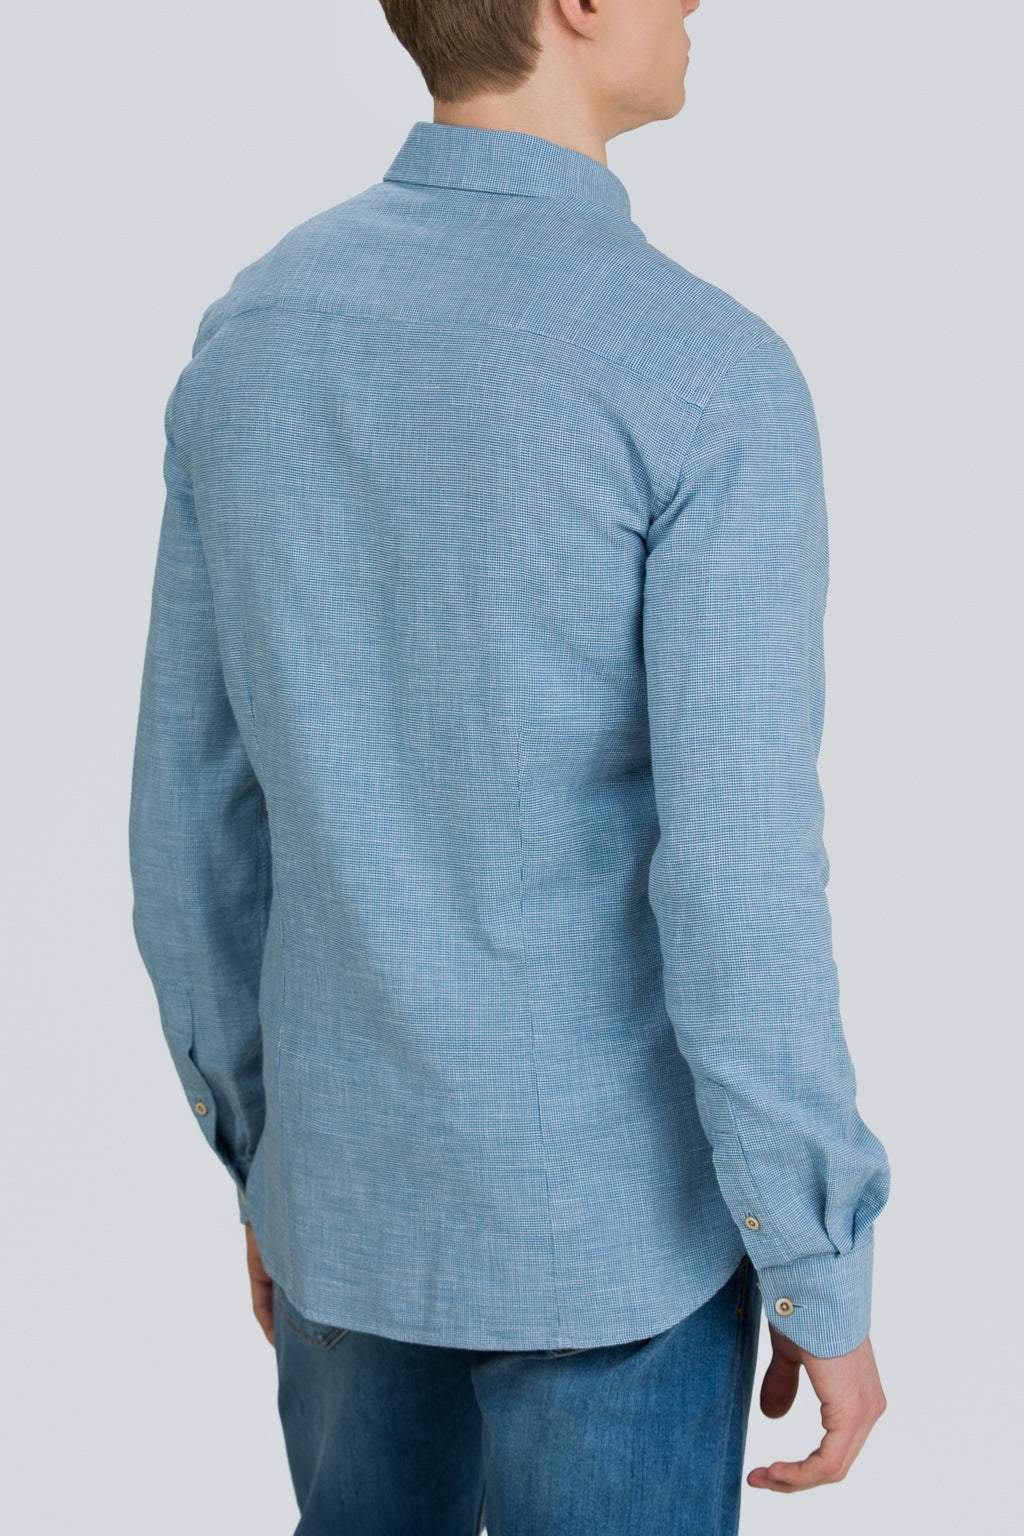 HJÚKI SOFT LOW COLLAR SHIRT